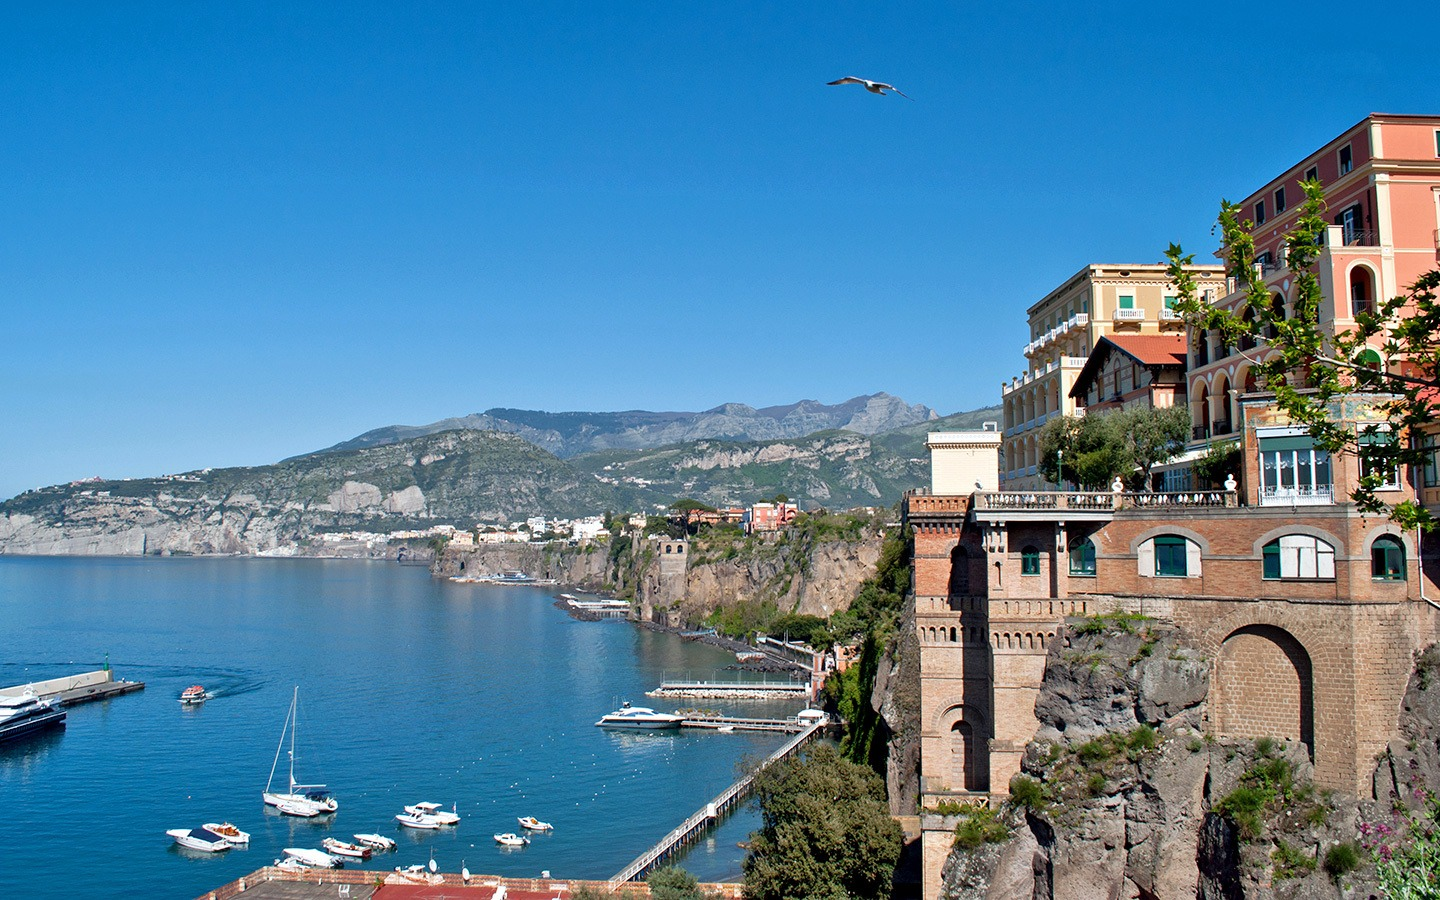 Sirens and sunsets: The best things to do in Sorrento, Italy